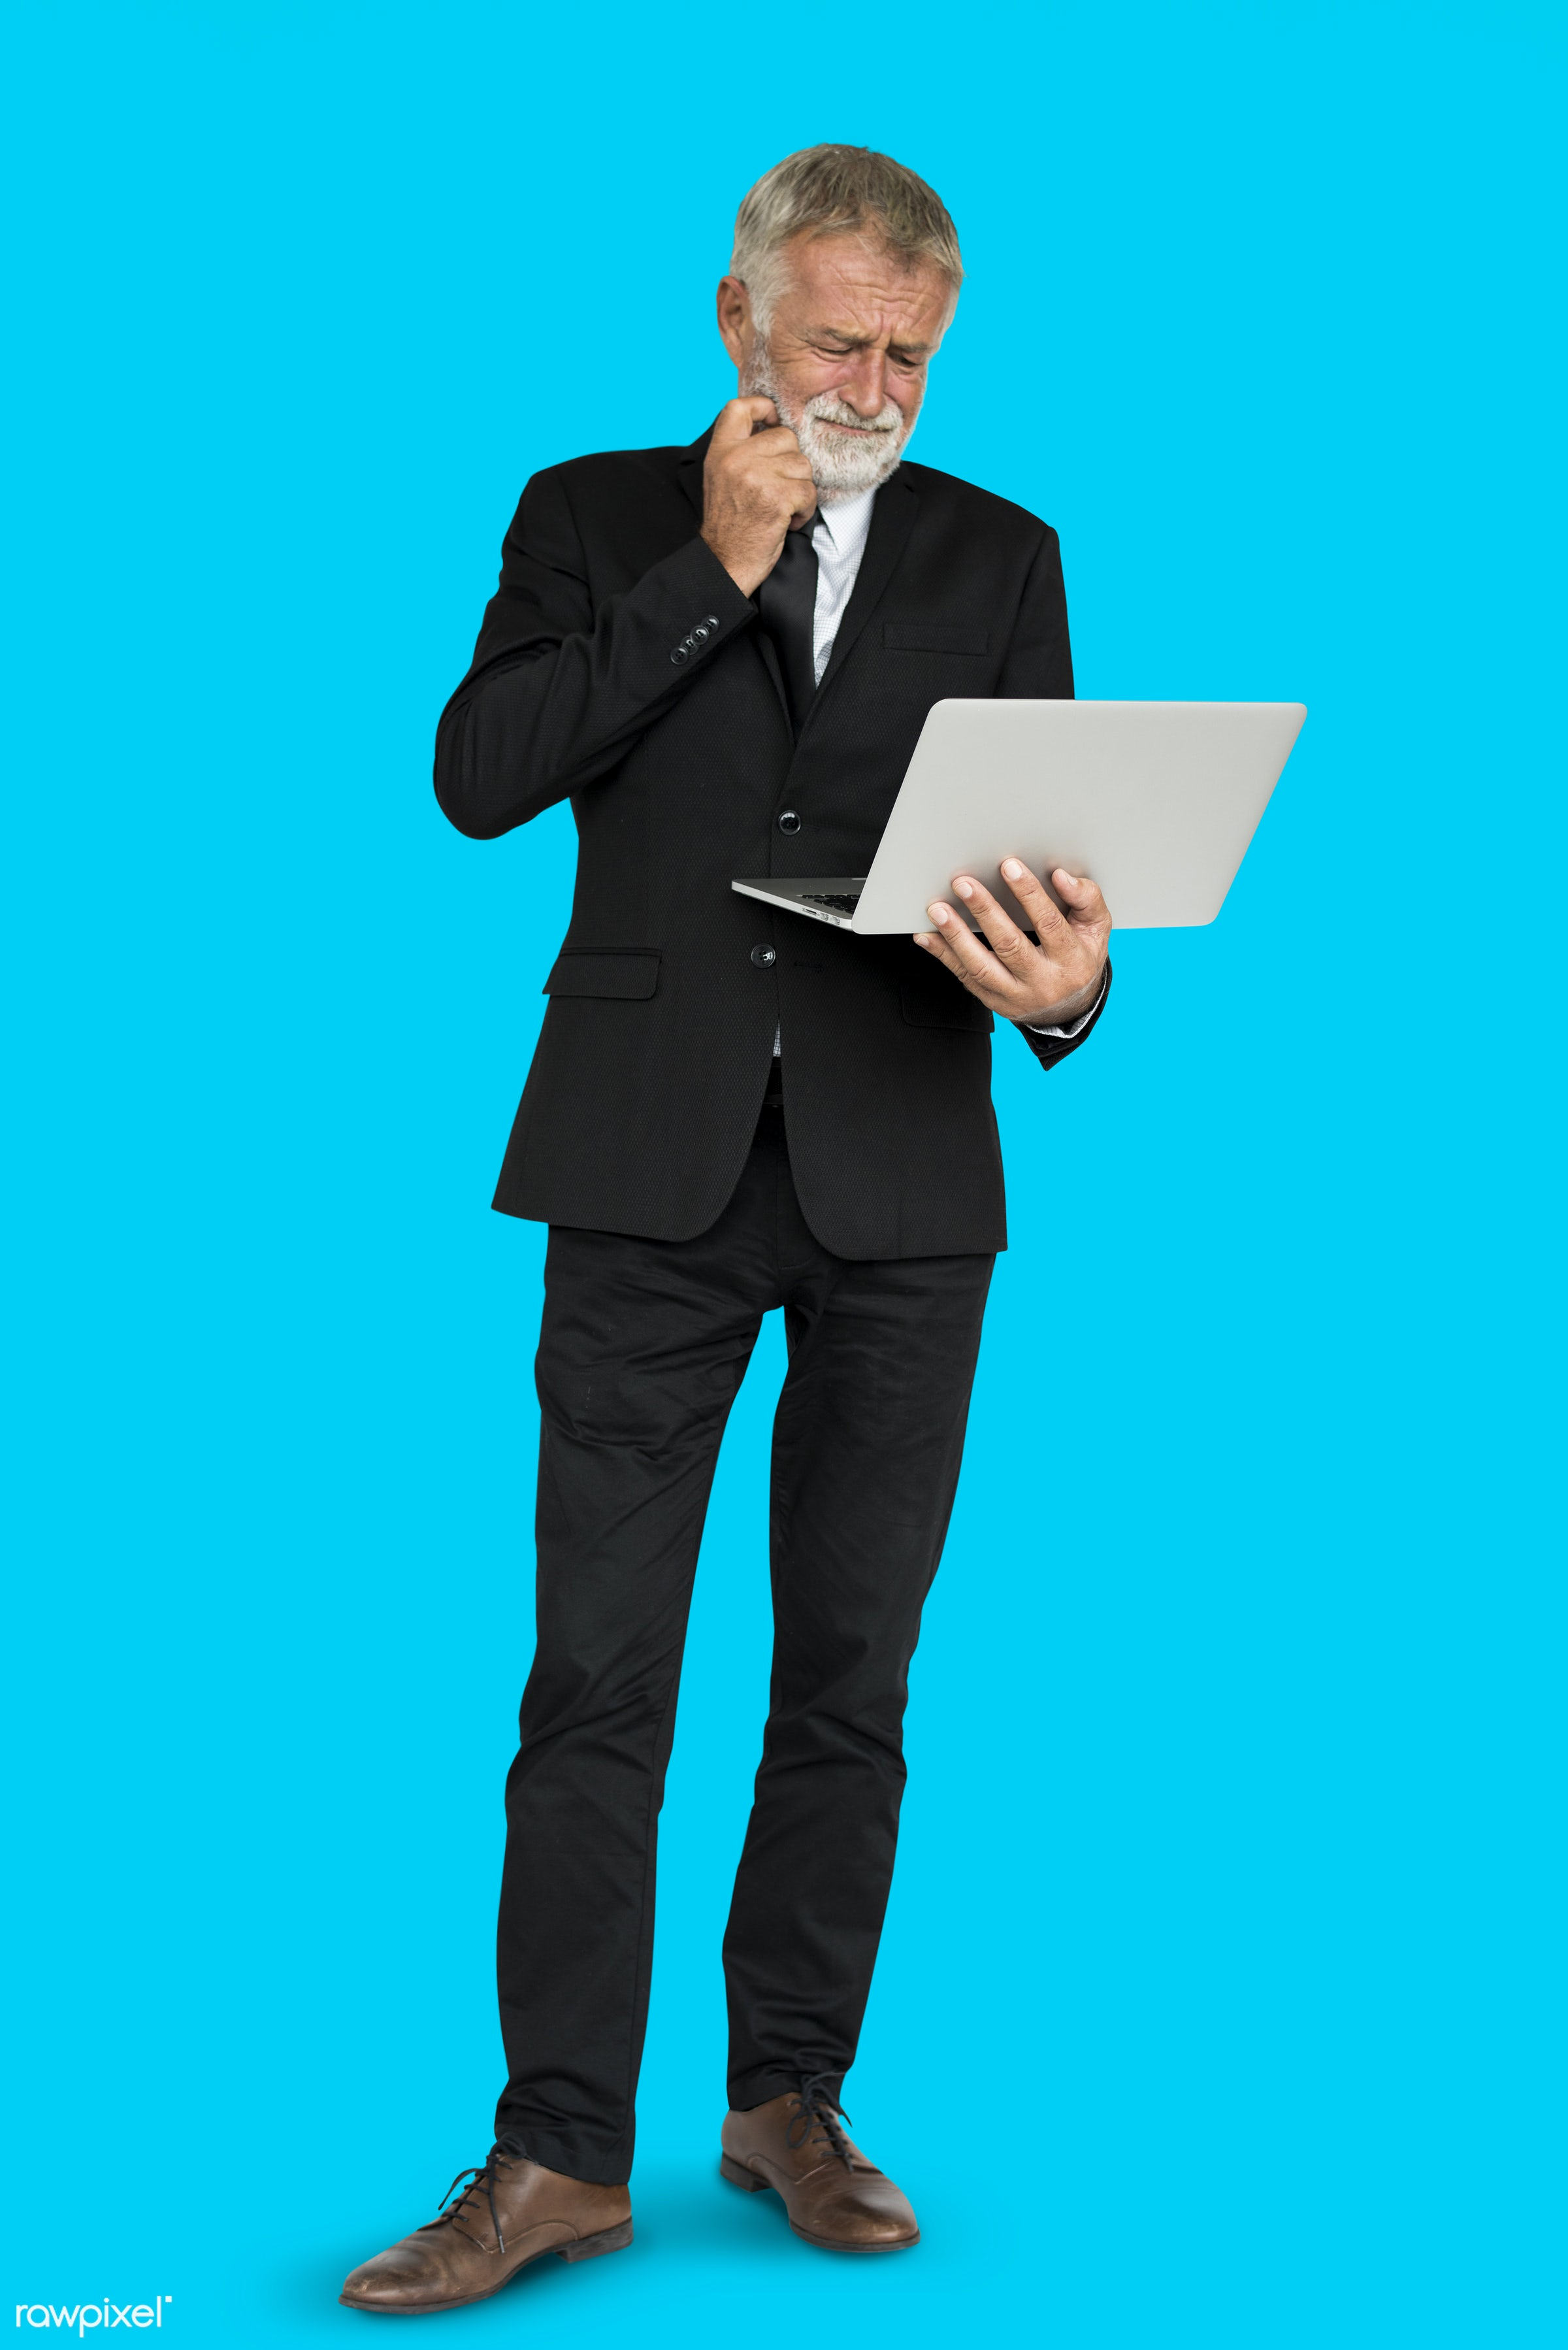 man, suit, standing, business man, holding, working, thinking, think, laptop, hold, business